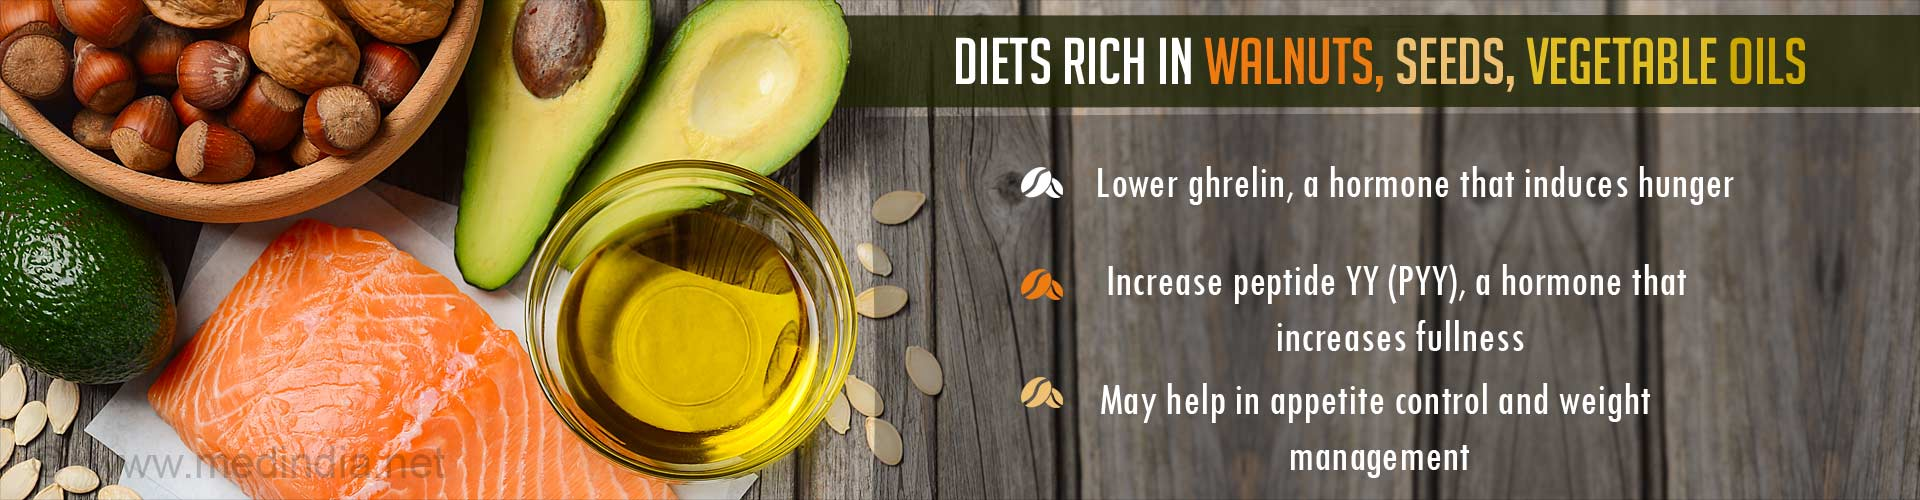 Can Diets Rich in Polyunsaturated Fats Help Control Hunger, Aid in Weight Loss